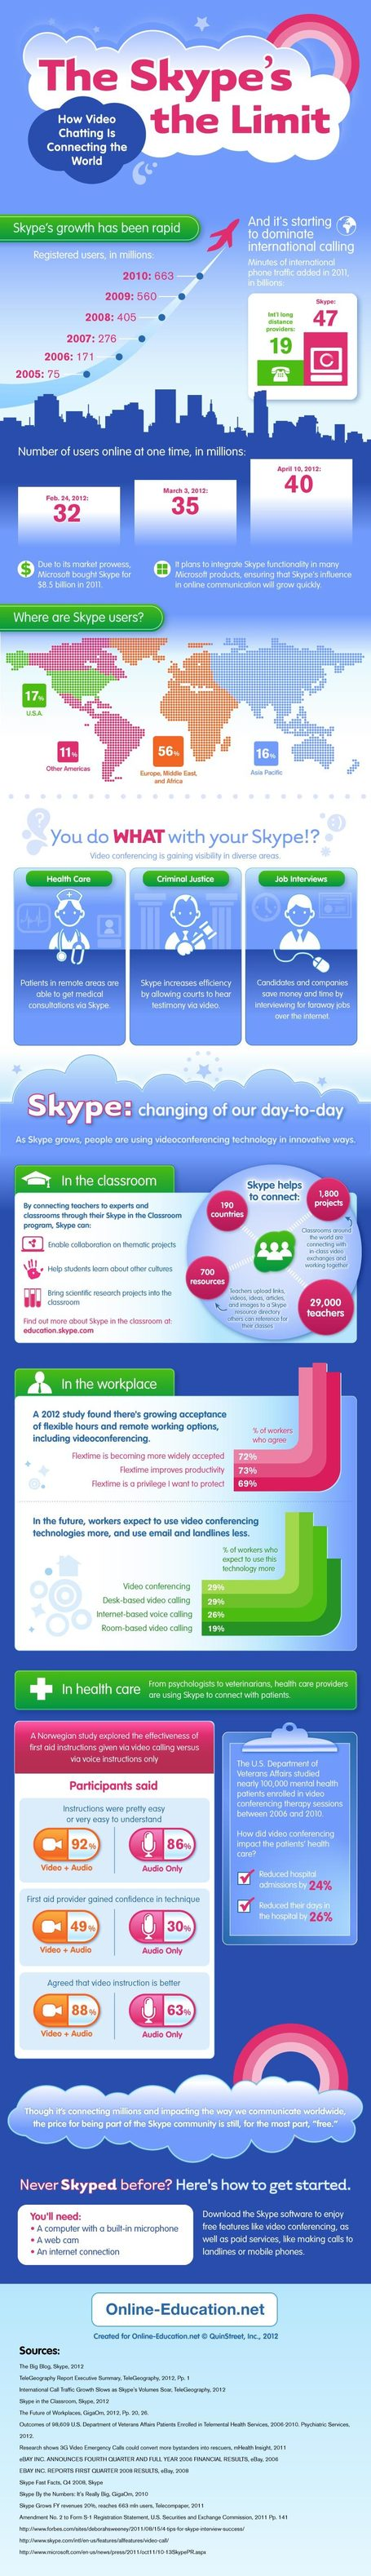 The Skype's the Limit: How Video Chatting is Connecting the World [Infographic] | MarketingHits | Scoop.it